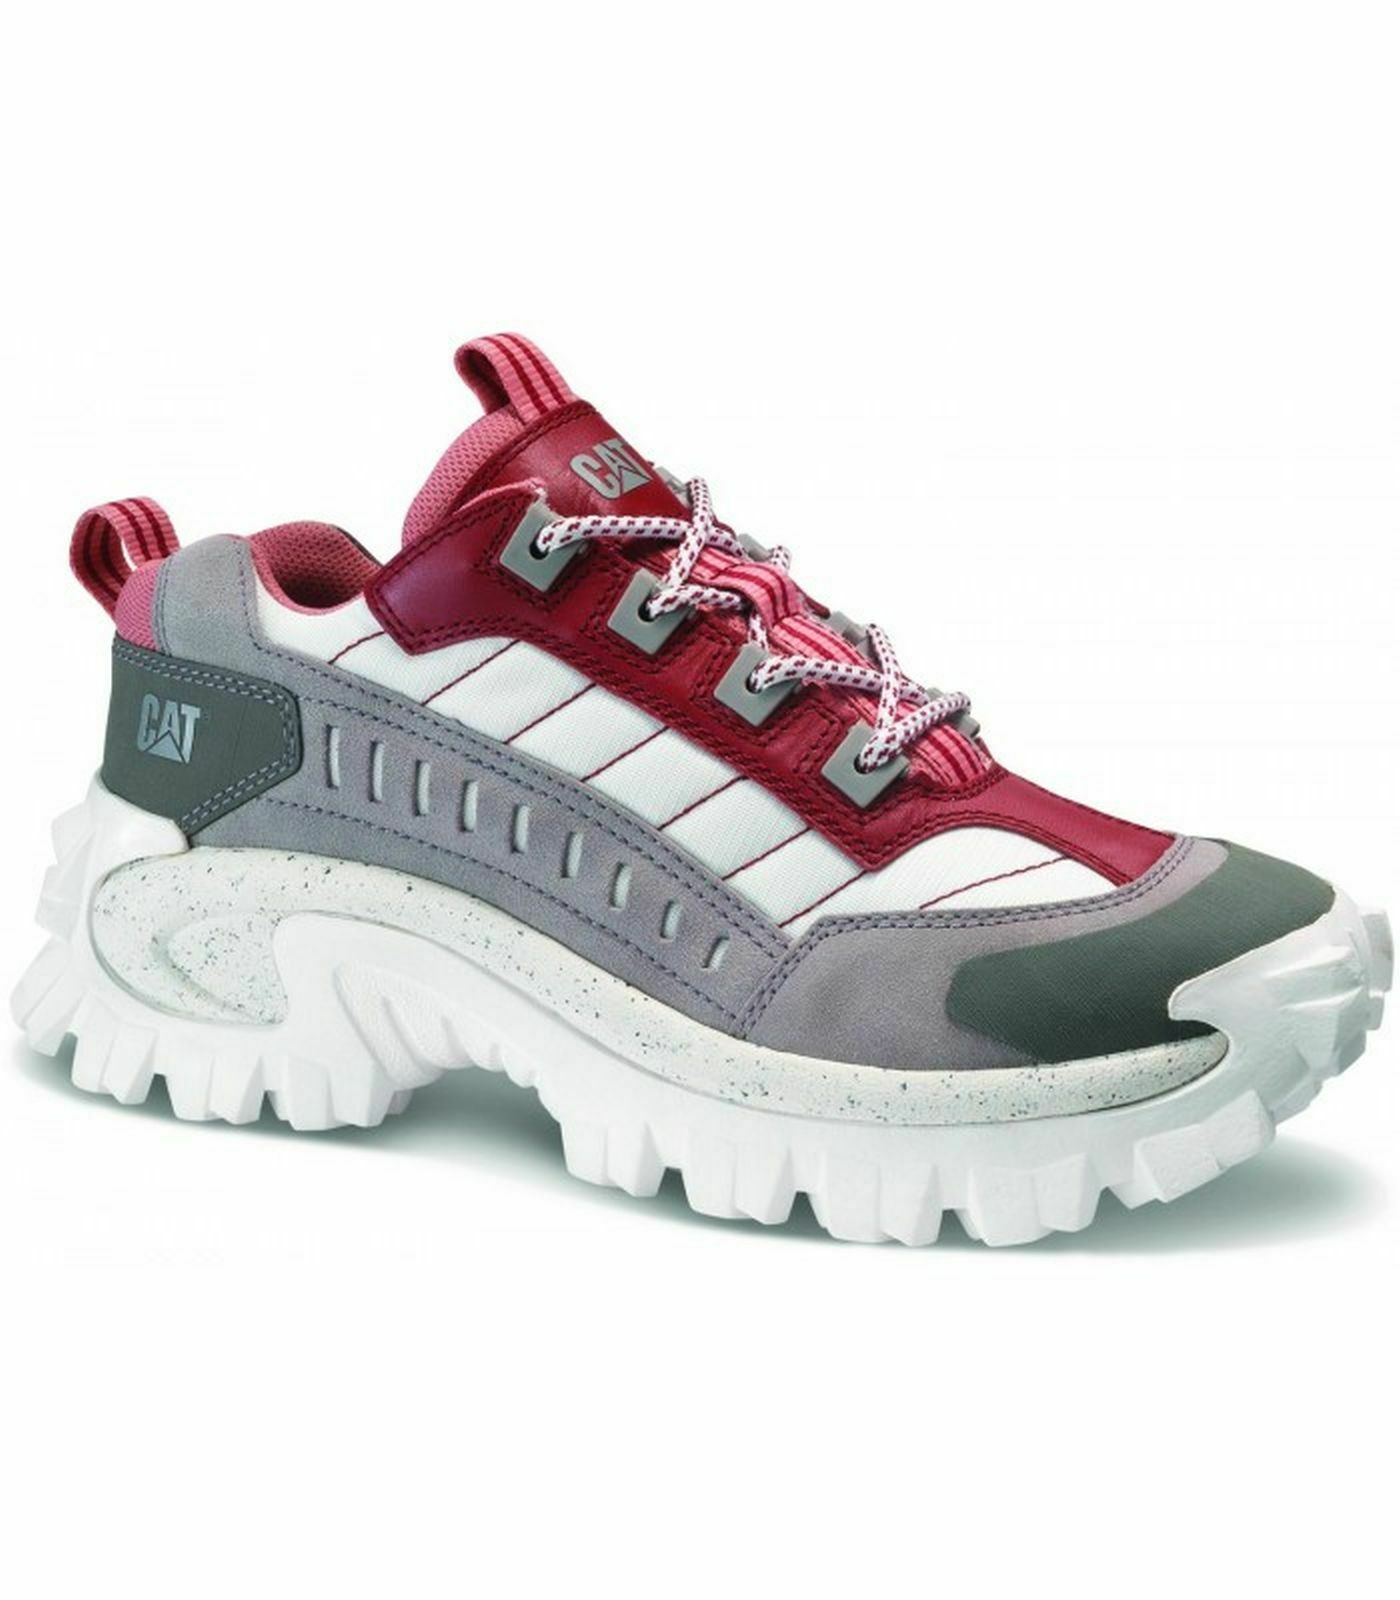 Cat Caterpillar Intruder 2 Womens Rio Red Ash Trainers P7234439 EUR 41 USA 8 UK 7